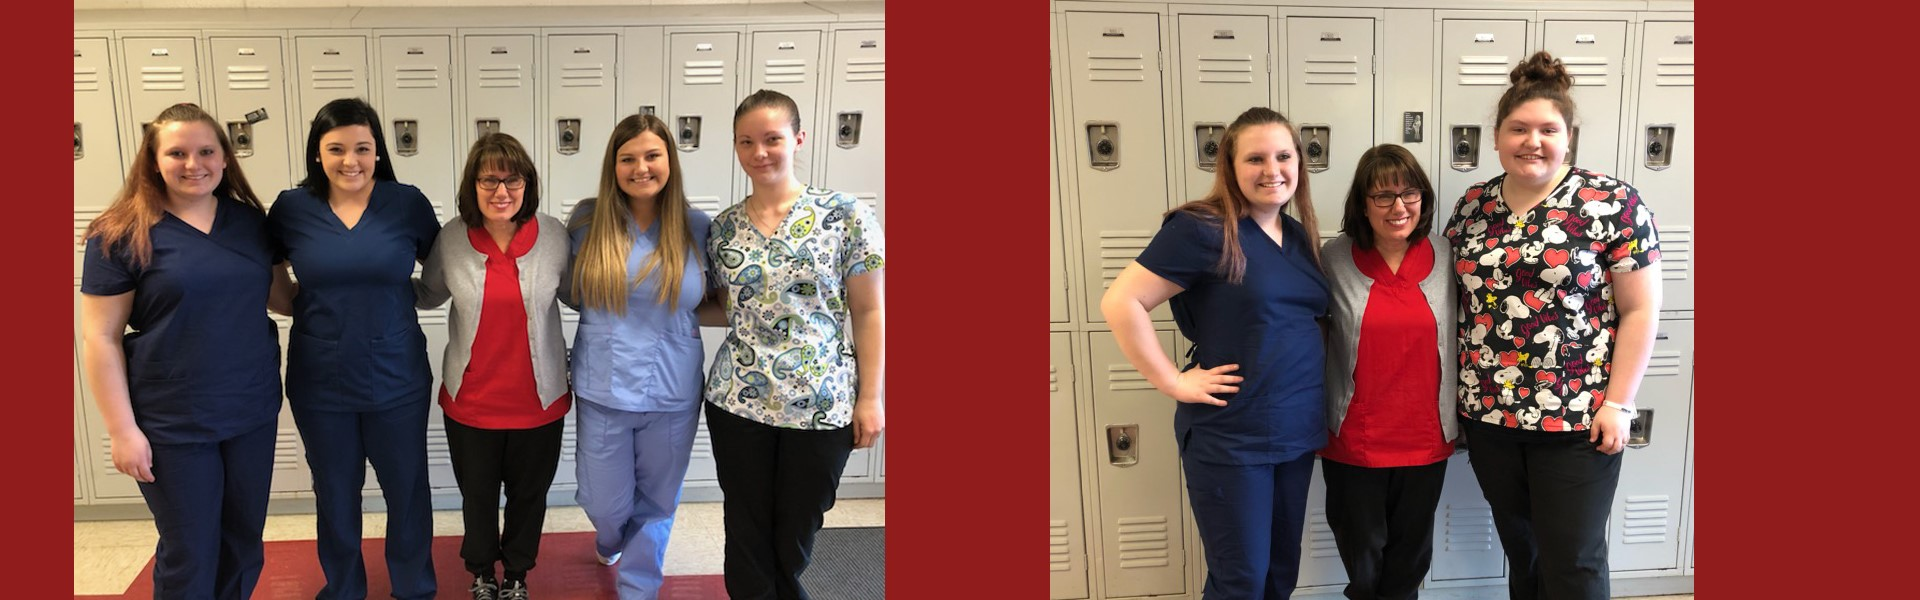 Wear your scrubs to school day!